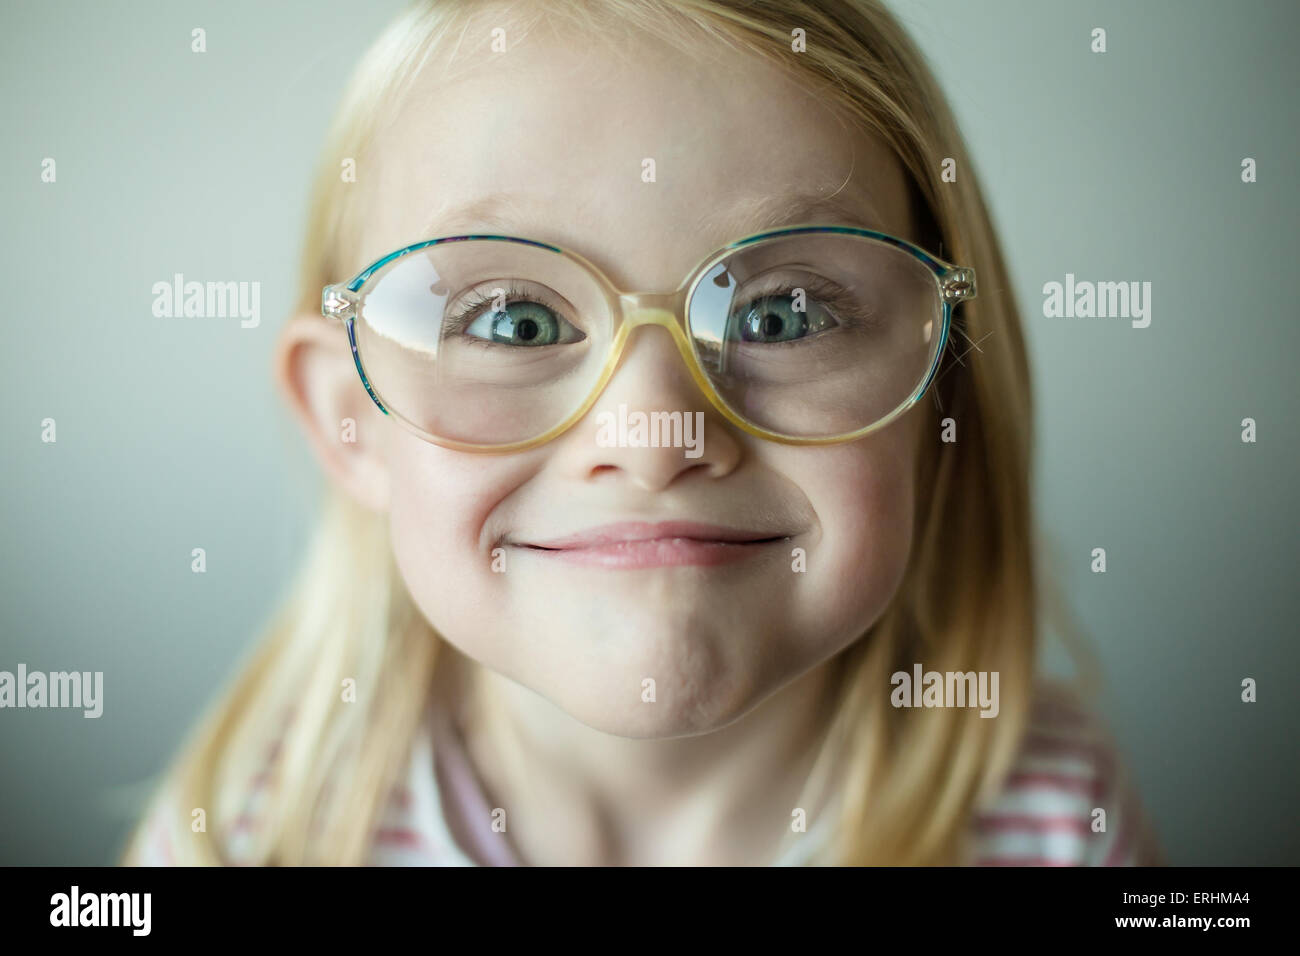 Girl wearing glasses making a silly face - Stock Image